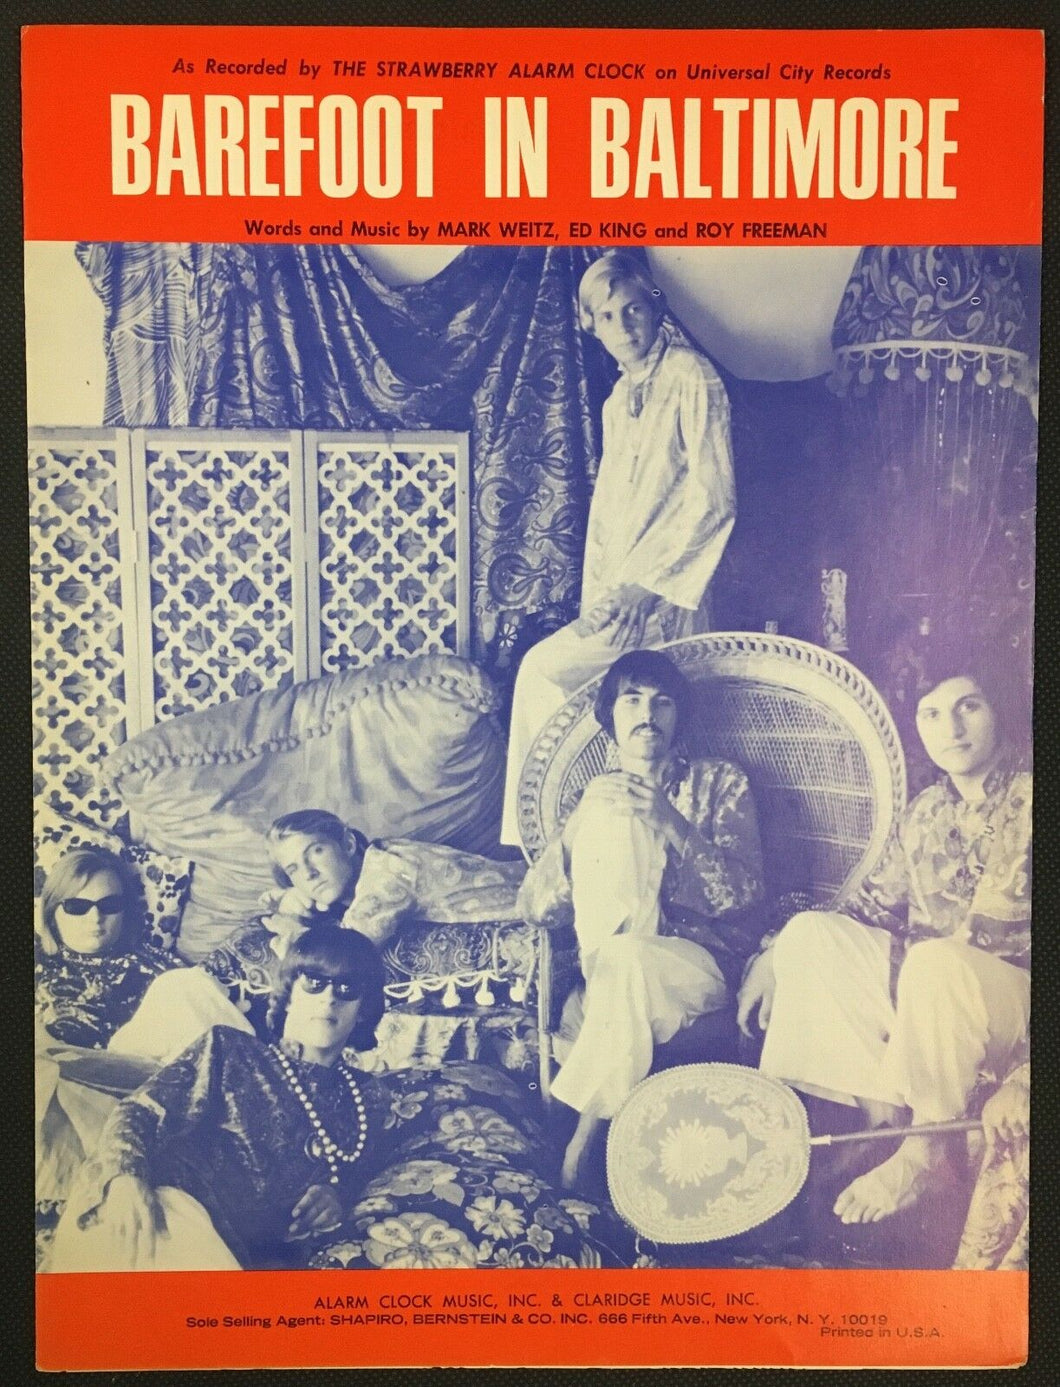 1968 Barefoot In Baltimore Sheet Music Mark Weitz Ed King Strawberry Alarm Clock